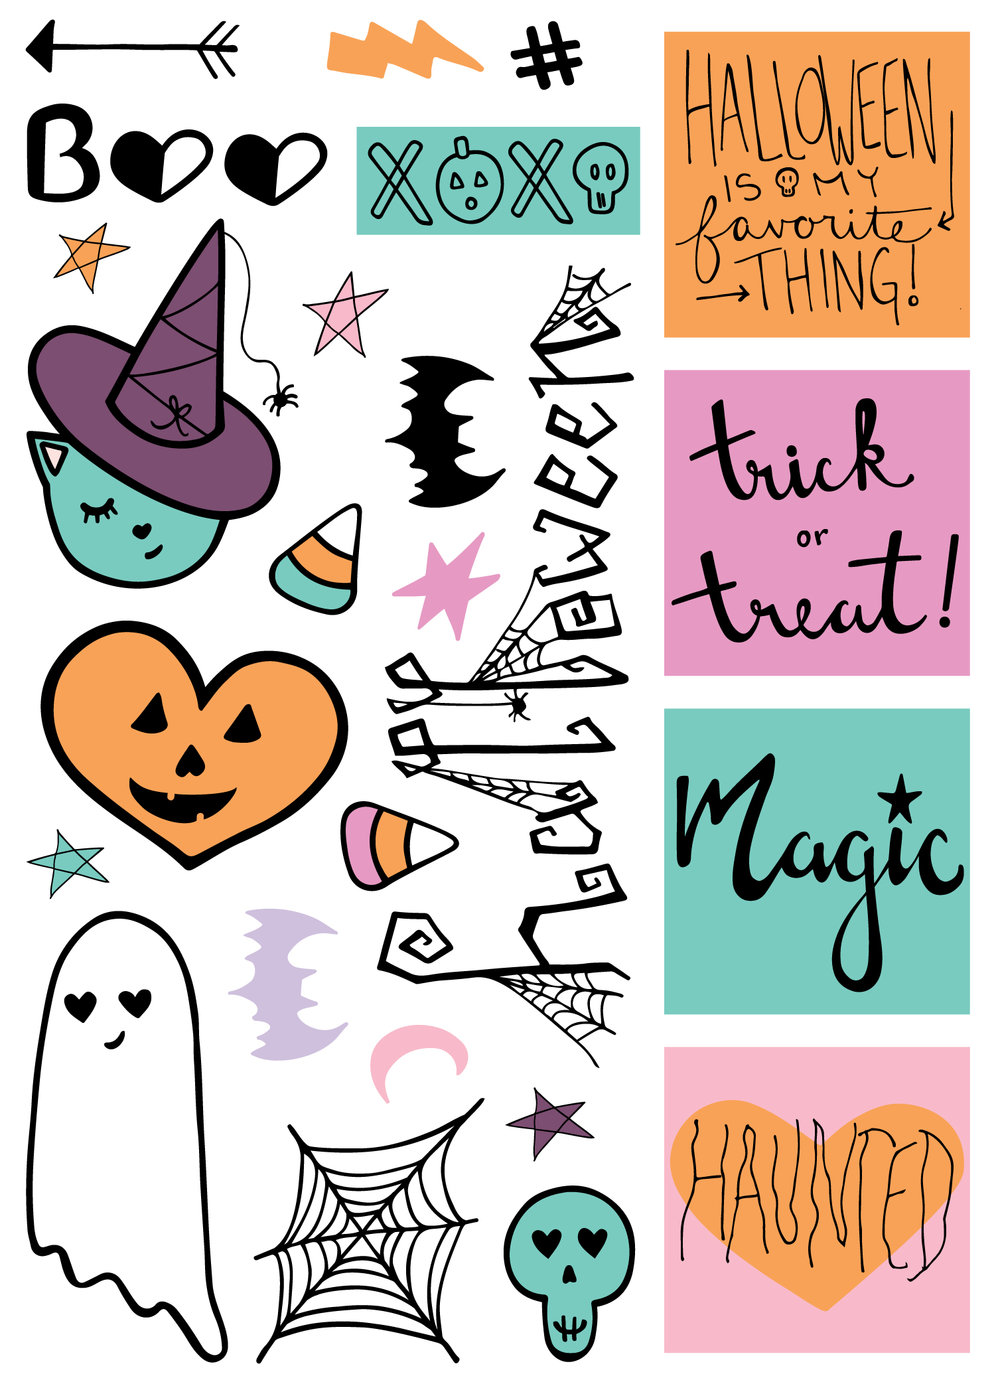 This is Halloween - Digital - Sticker Sheet 1 copy.jpg